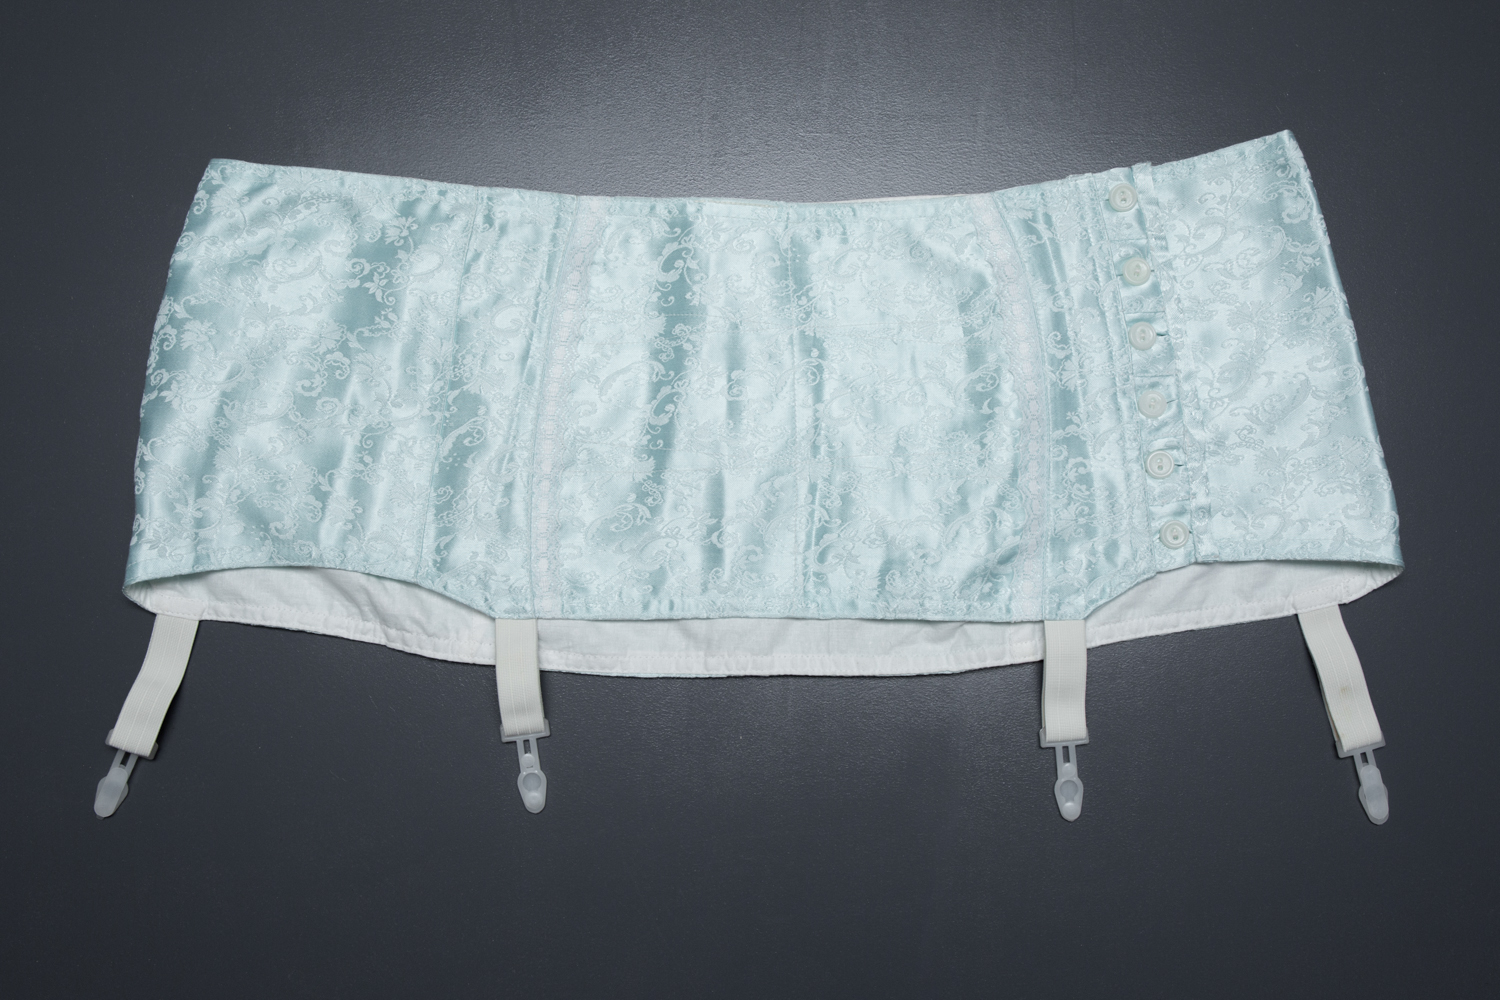 Homemade Pale Blue Jacquard Weave Suspender Belt With Plastic Garter Clips, c. 1950s, Russia. The Underpinnings Museum. Photography by Tigz Rice.